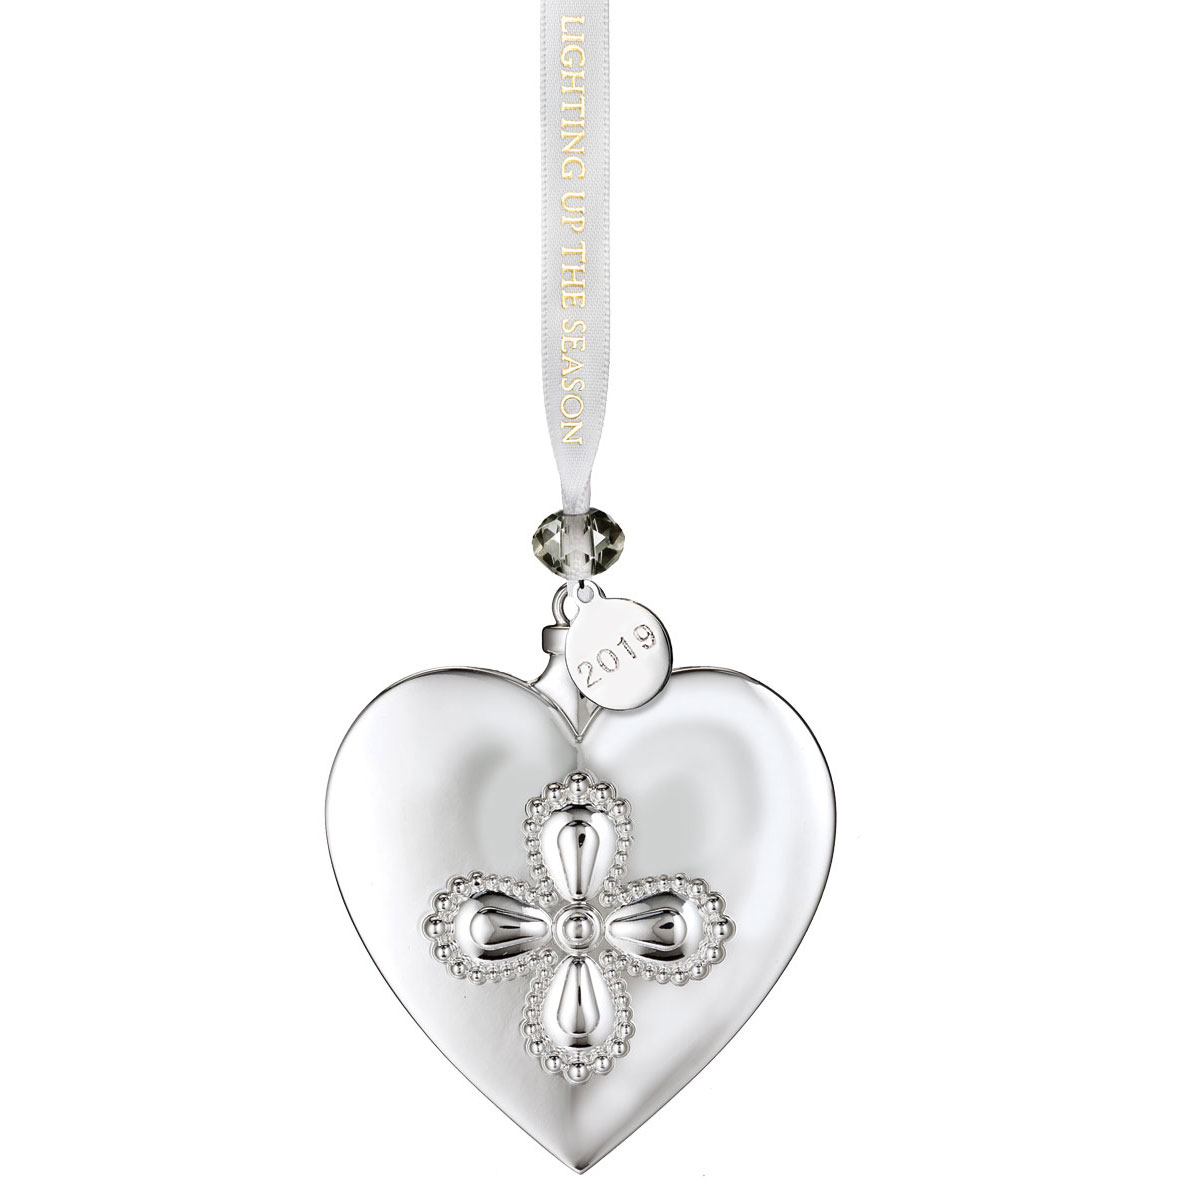 Waterford Silver Heart Ornament